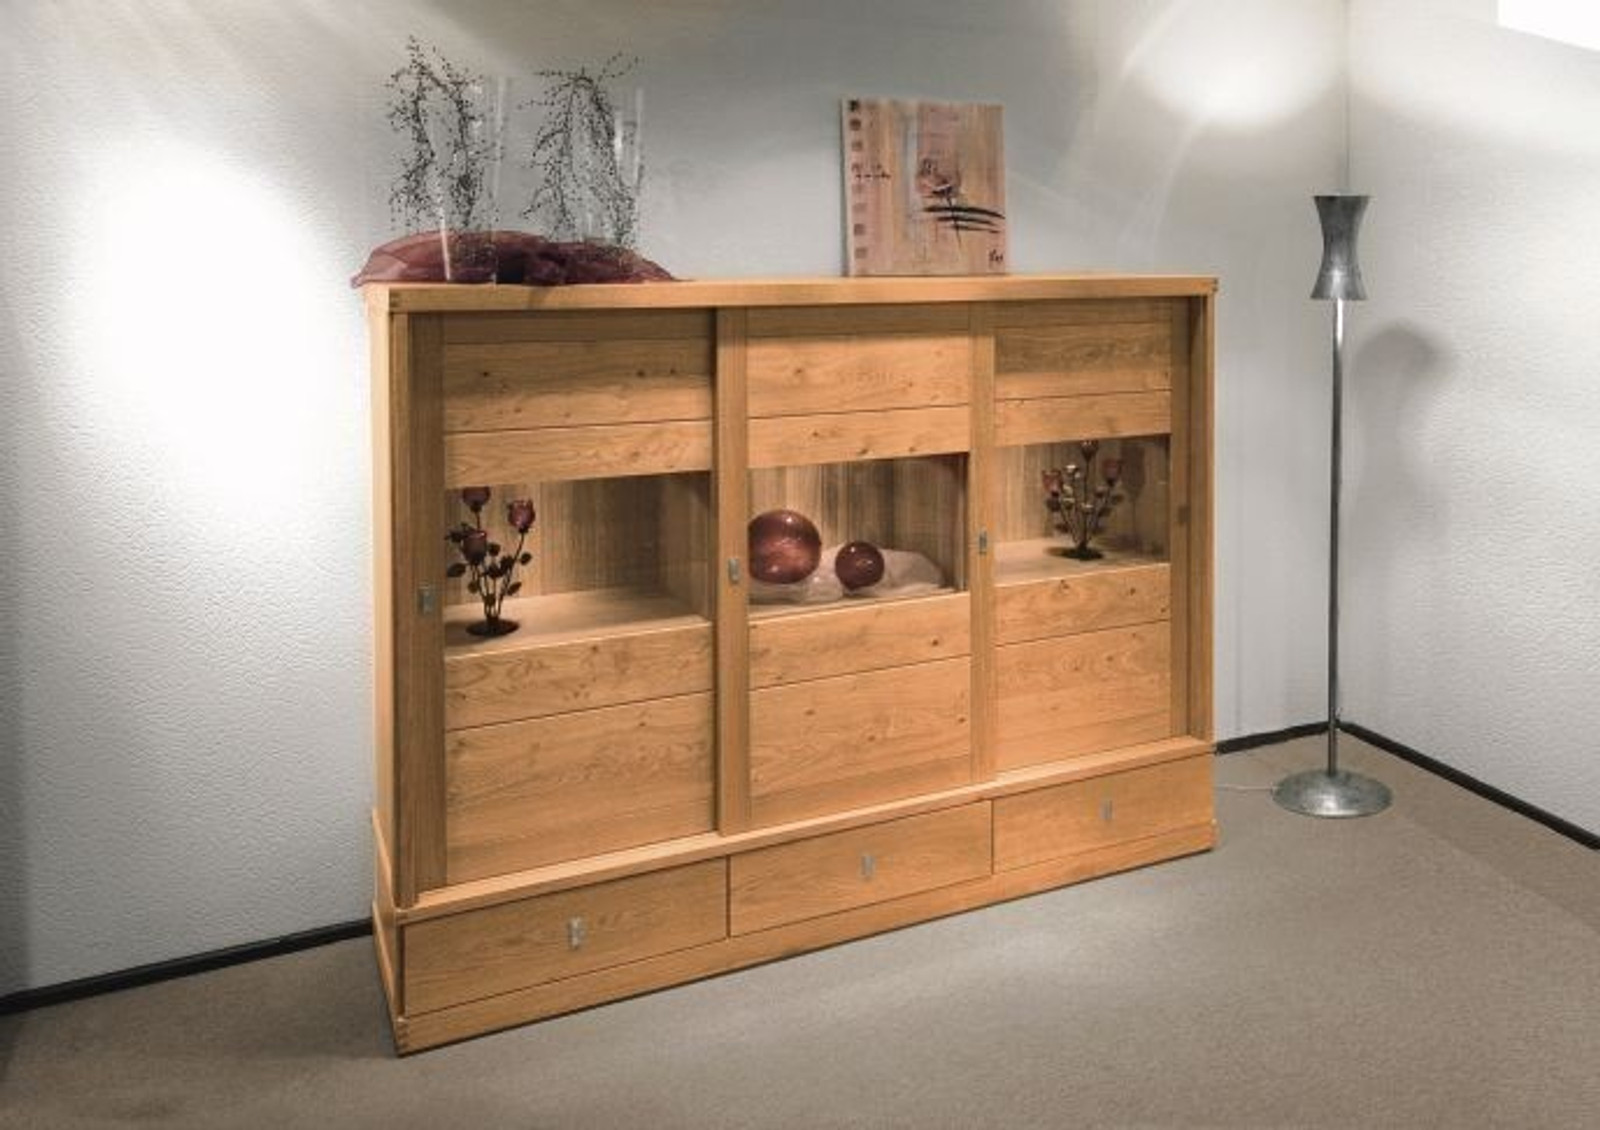 wohnzimmer schrank bzw esszimmer vitrine kantatus 3 schiebet ren mit holz glas kombination. Black Bedroom Furniture Sets. Home Design Ideas